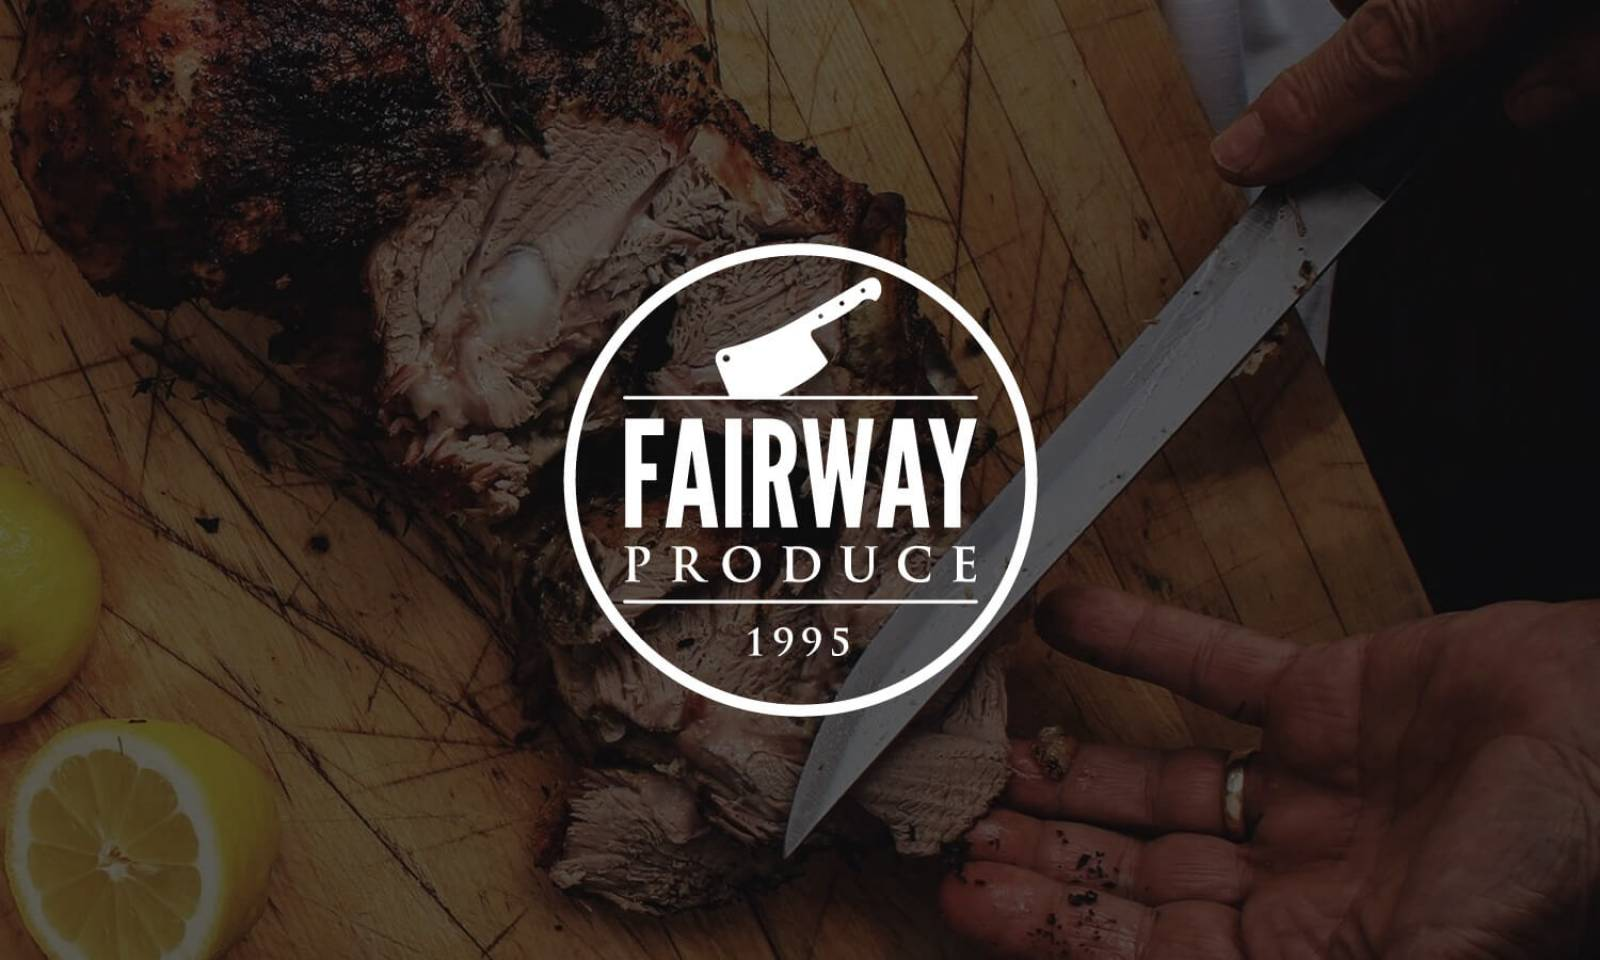 logo-Fairway-corporate-identity-agency-graphic-design-canterbury.jpg